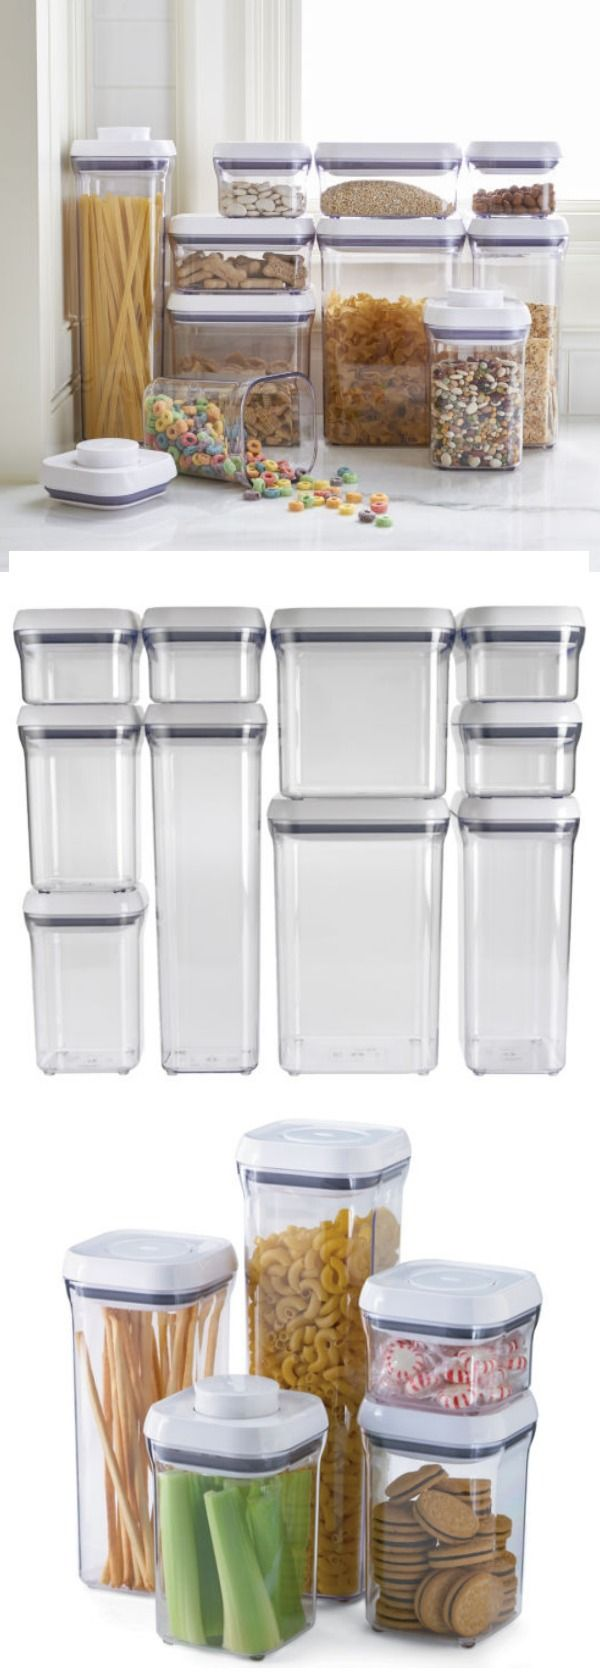 25 unique clear plastic containers ideas on pinterest - Plastic bathroom storage containers ...